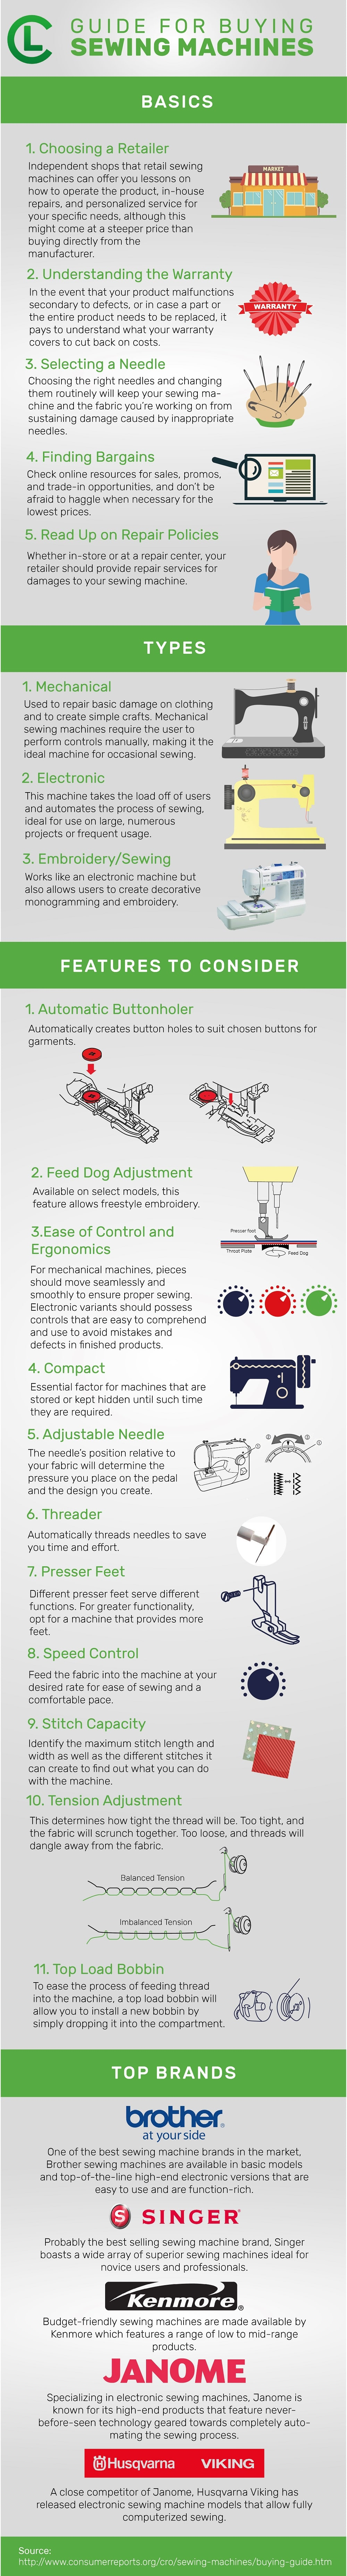 Guide For Buying Sewing Machines Infrographic